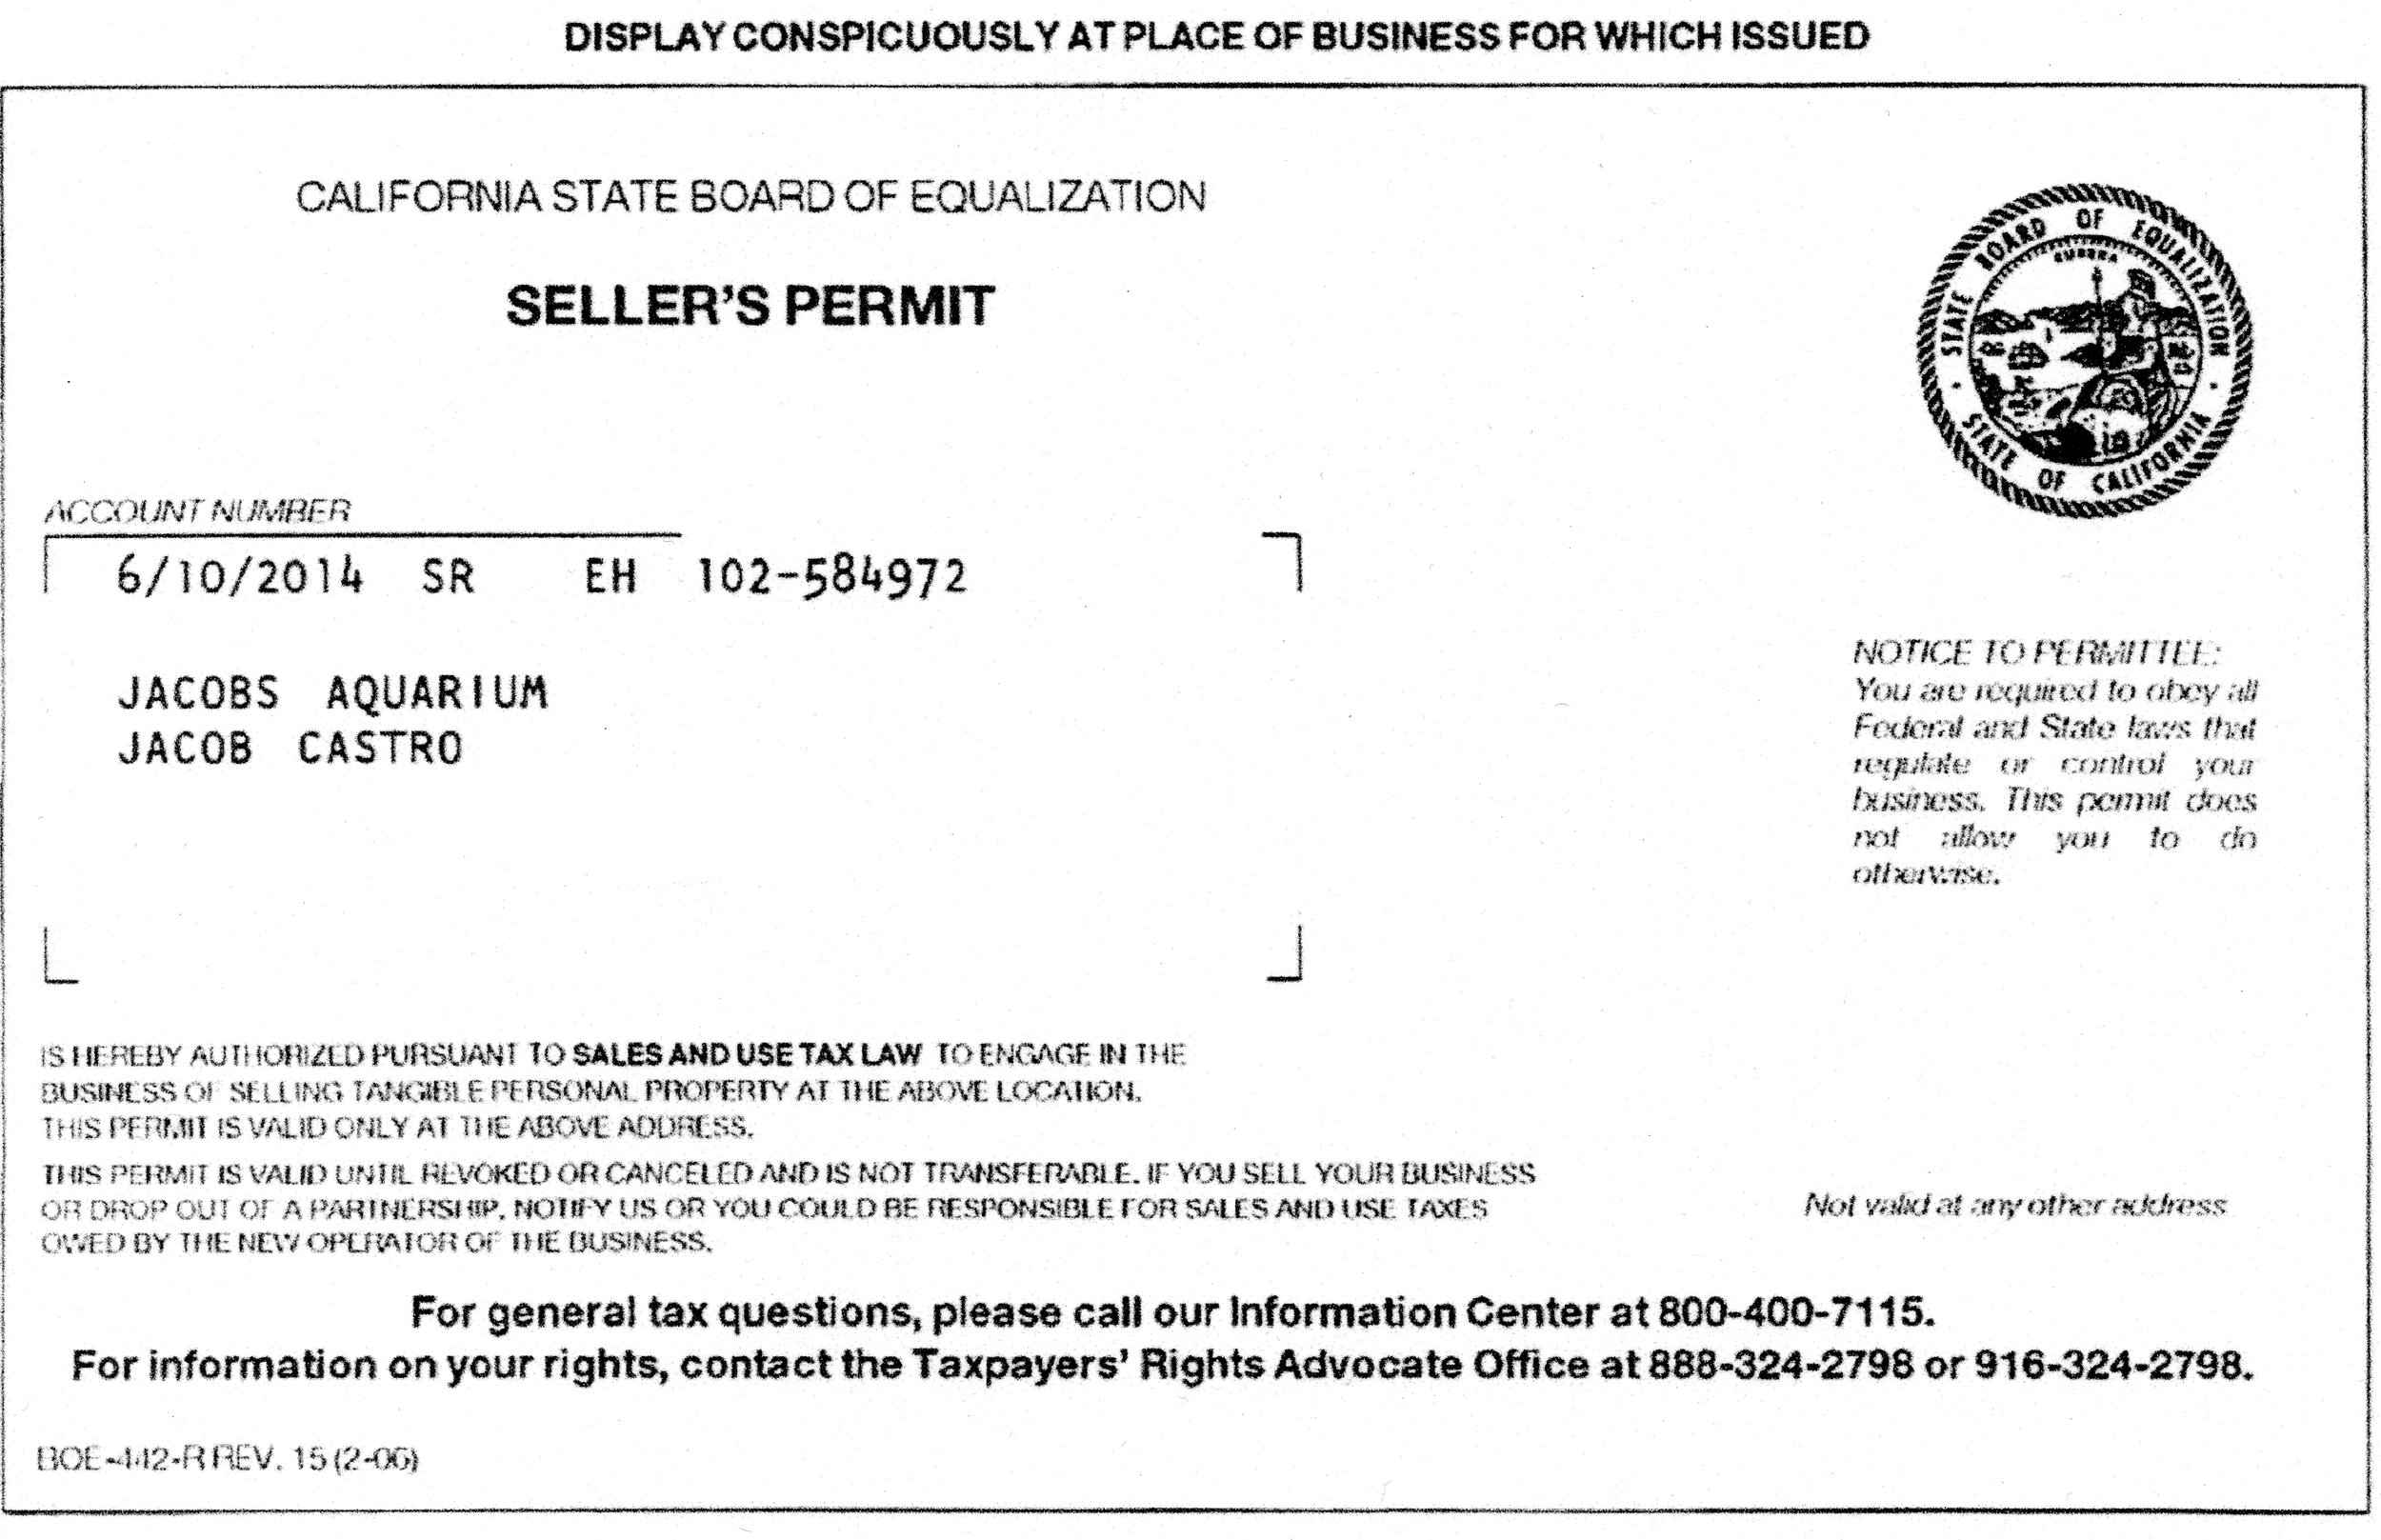 Personal information has been removed from this permit for privacy. Additional permit information is available upon request with valid government issued badge or identification.